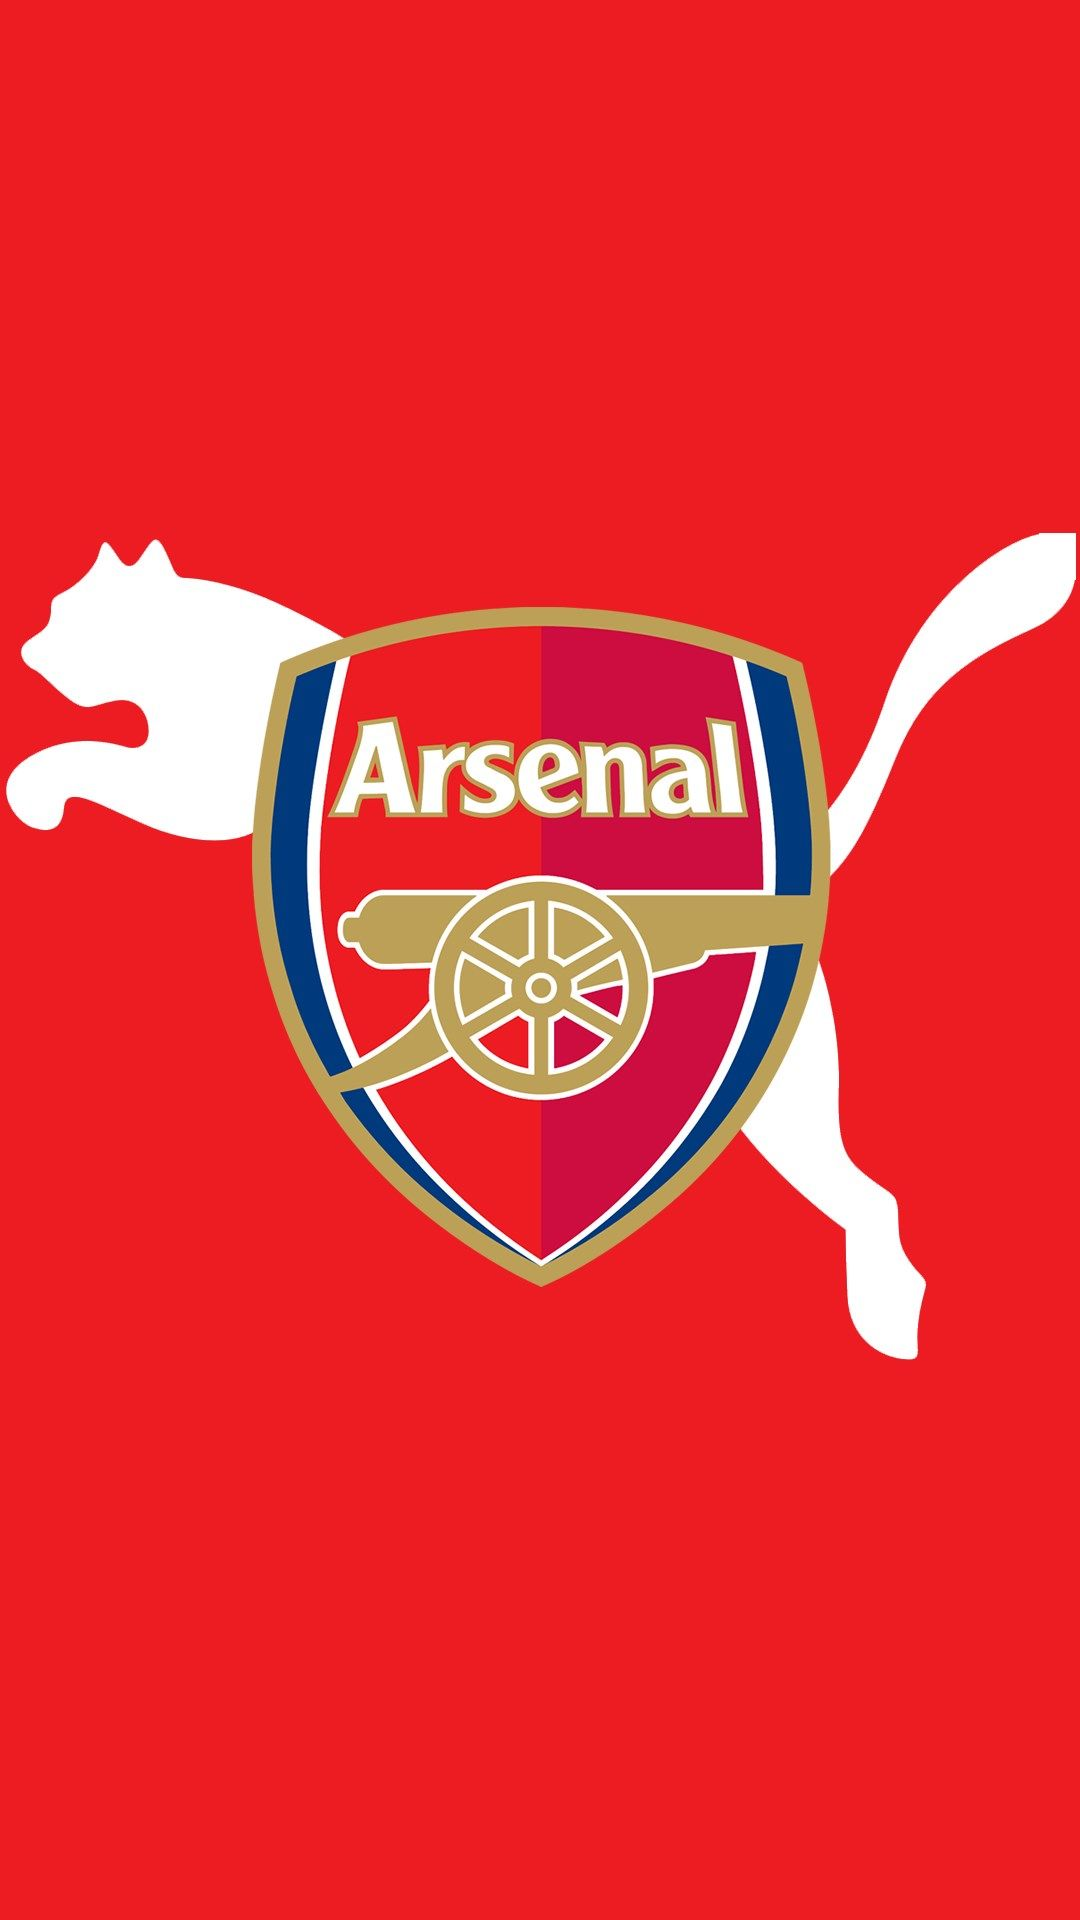 Red Background Arsenal Logo Wallpaper For Mobile So True